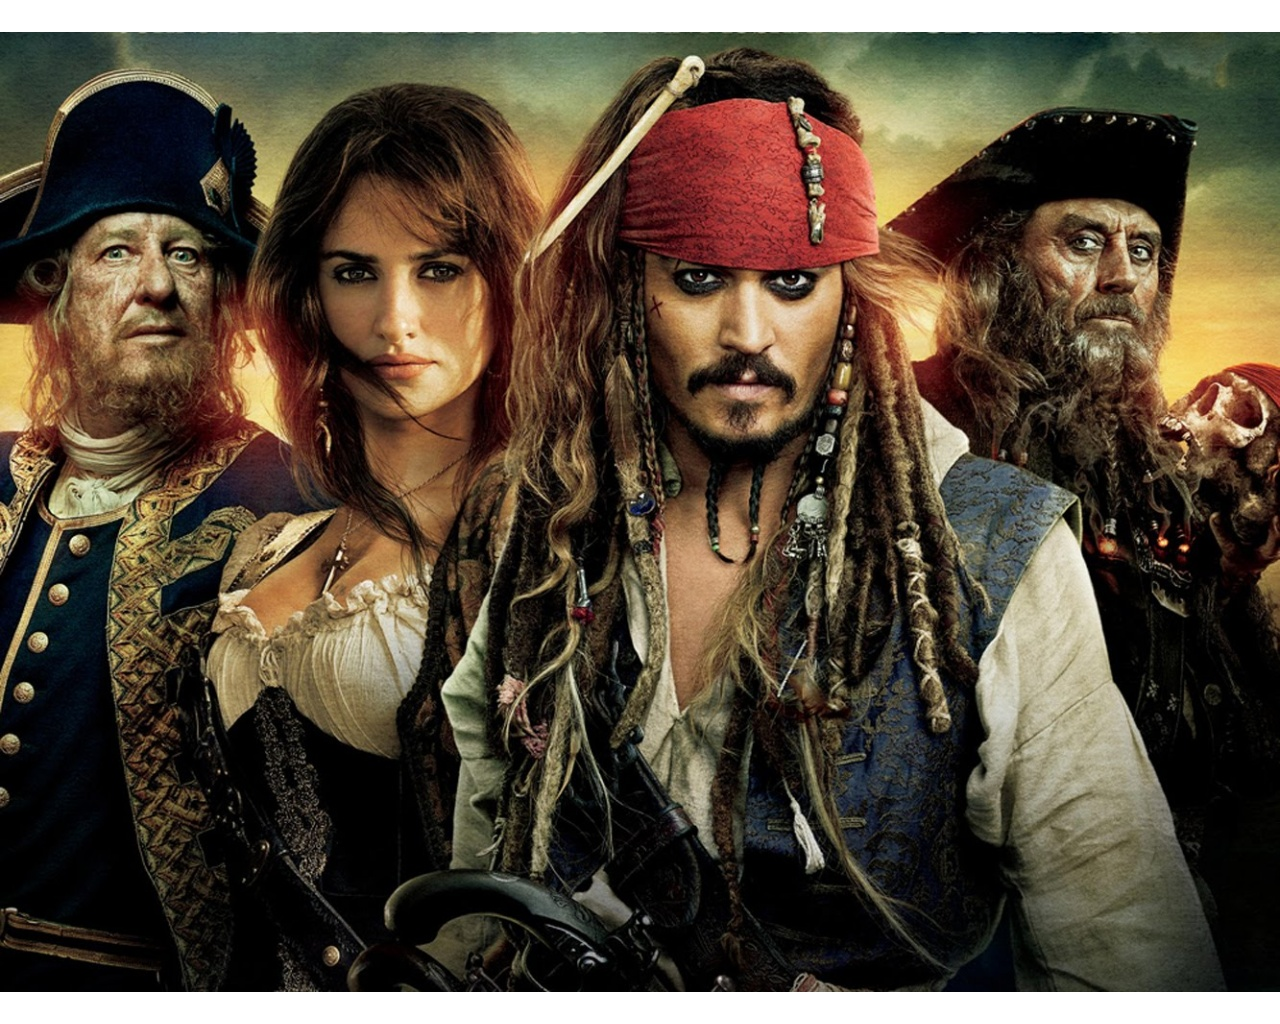 an introduction to pirates and the movies Johnny depp is an actor known for his portrayal of and his role as captain jack sparrow in the 'pirates of the legitimate movie role in the film.